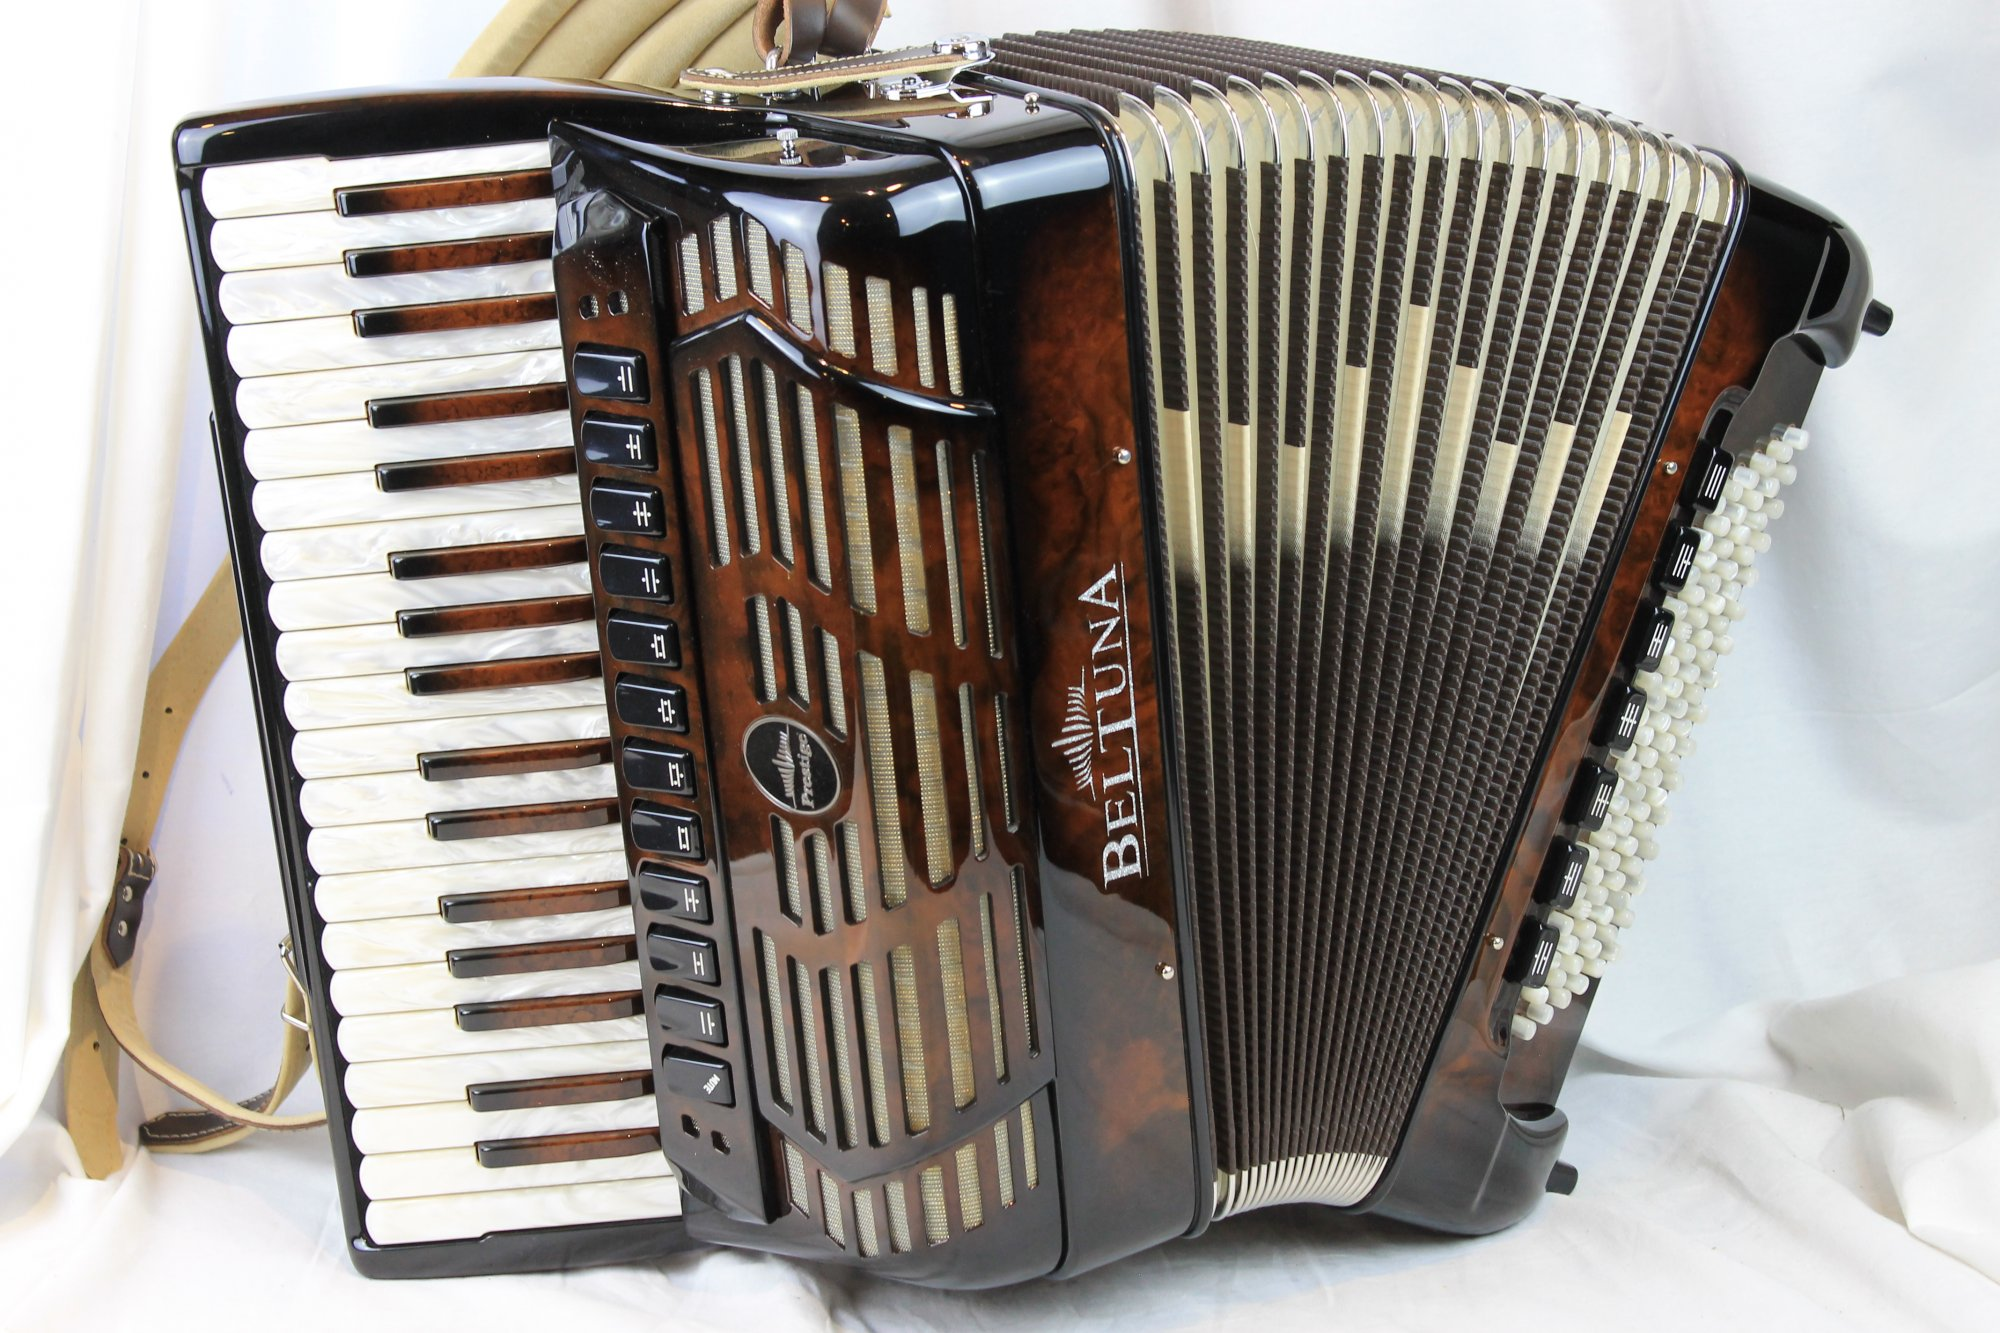 NEW Walnut Root Beltuna Prestige IV Piano Accordion LMMH 37 96